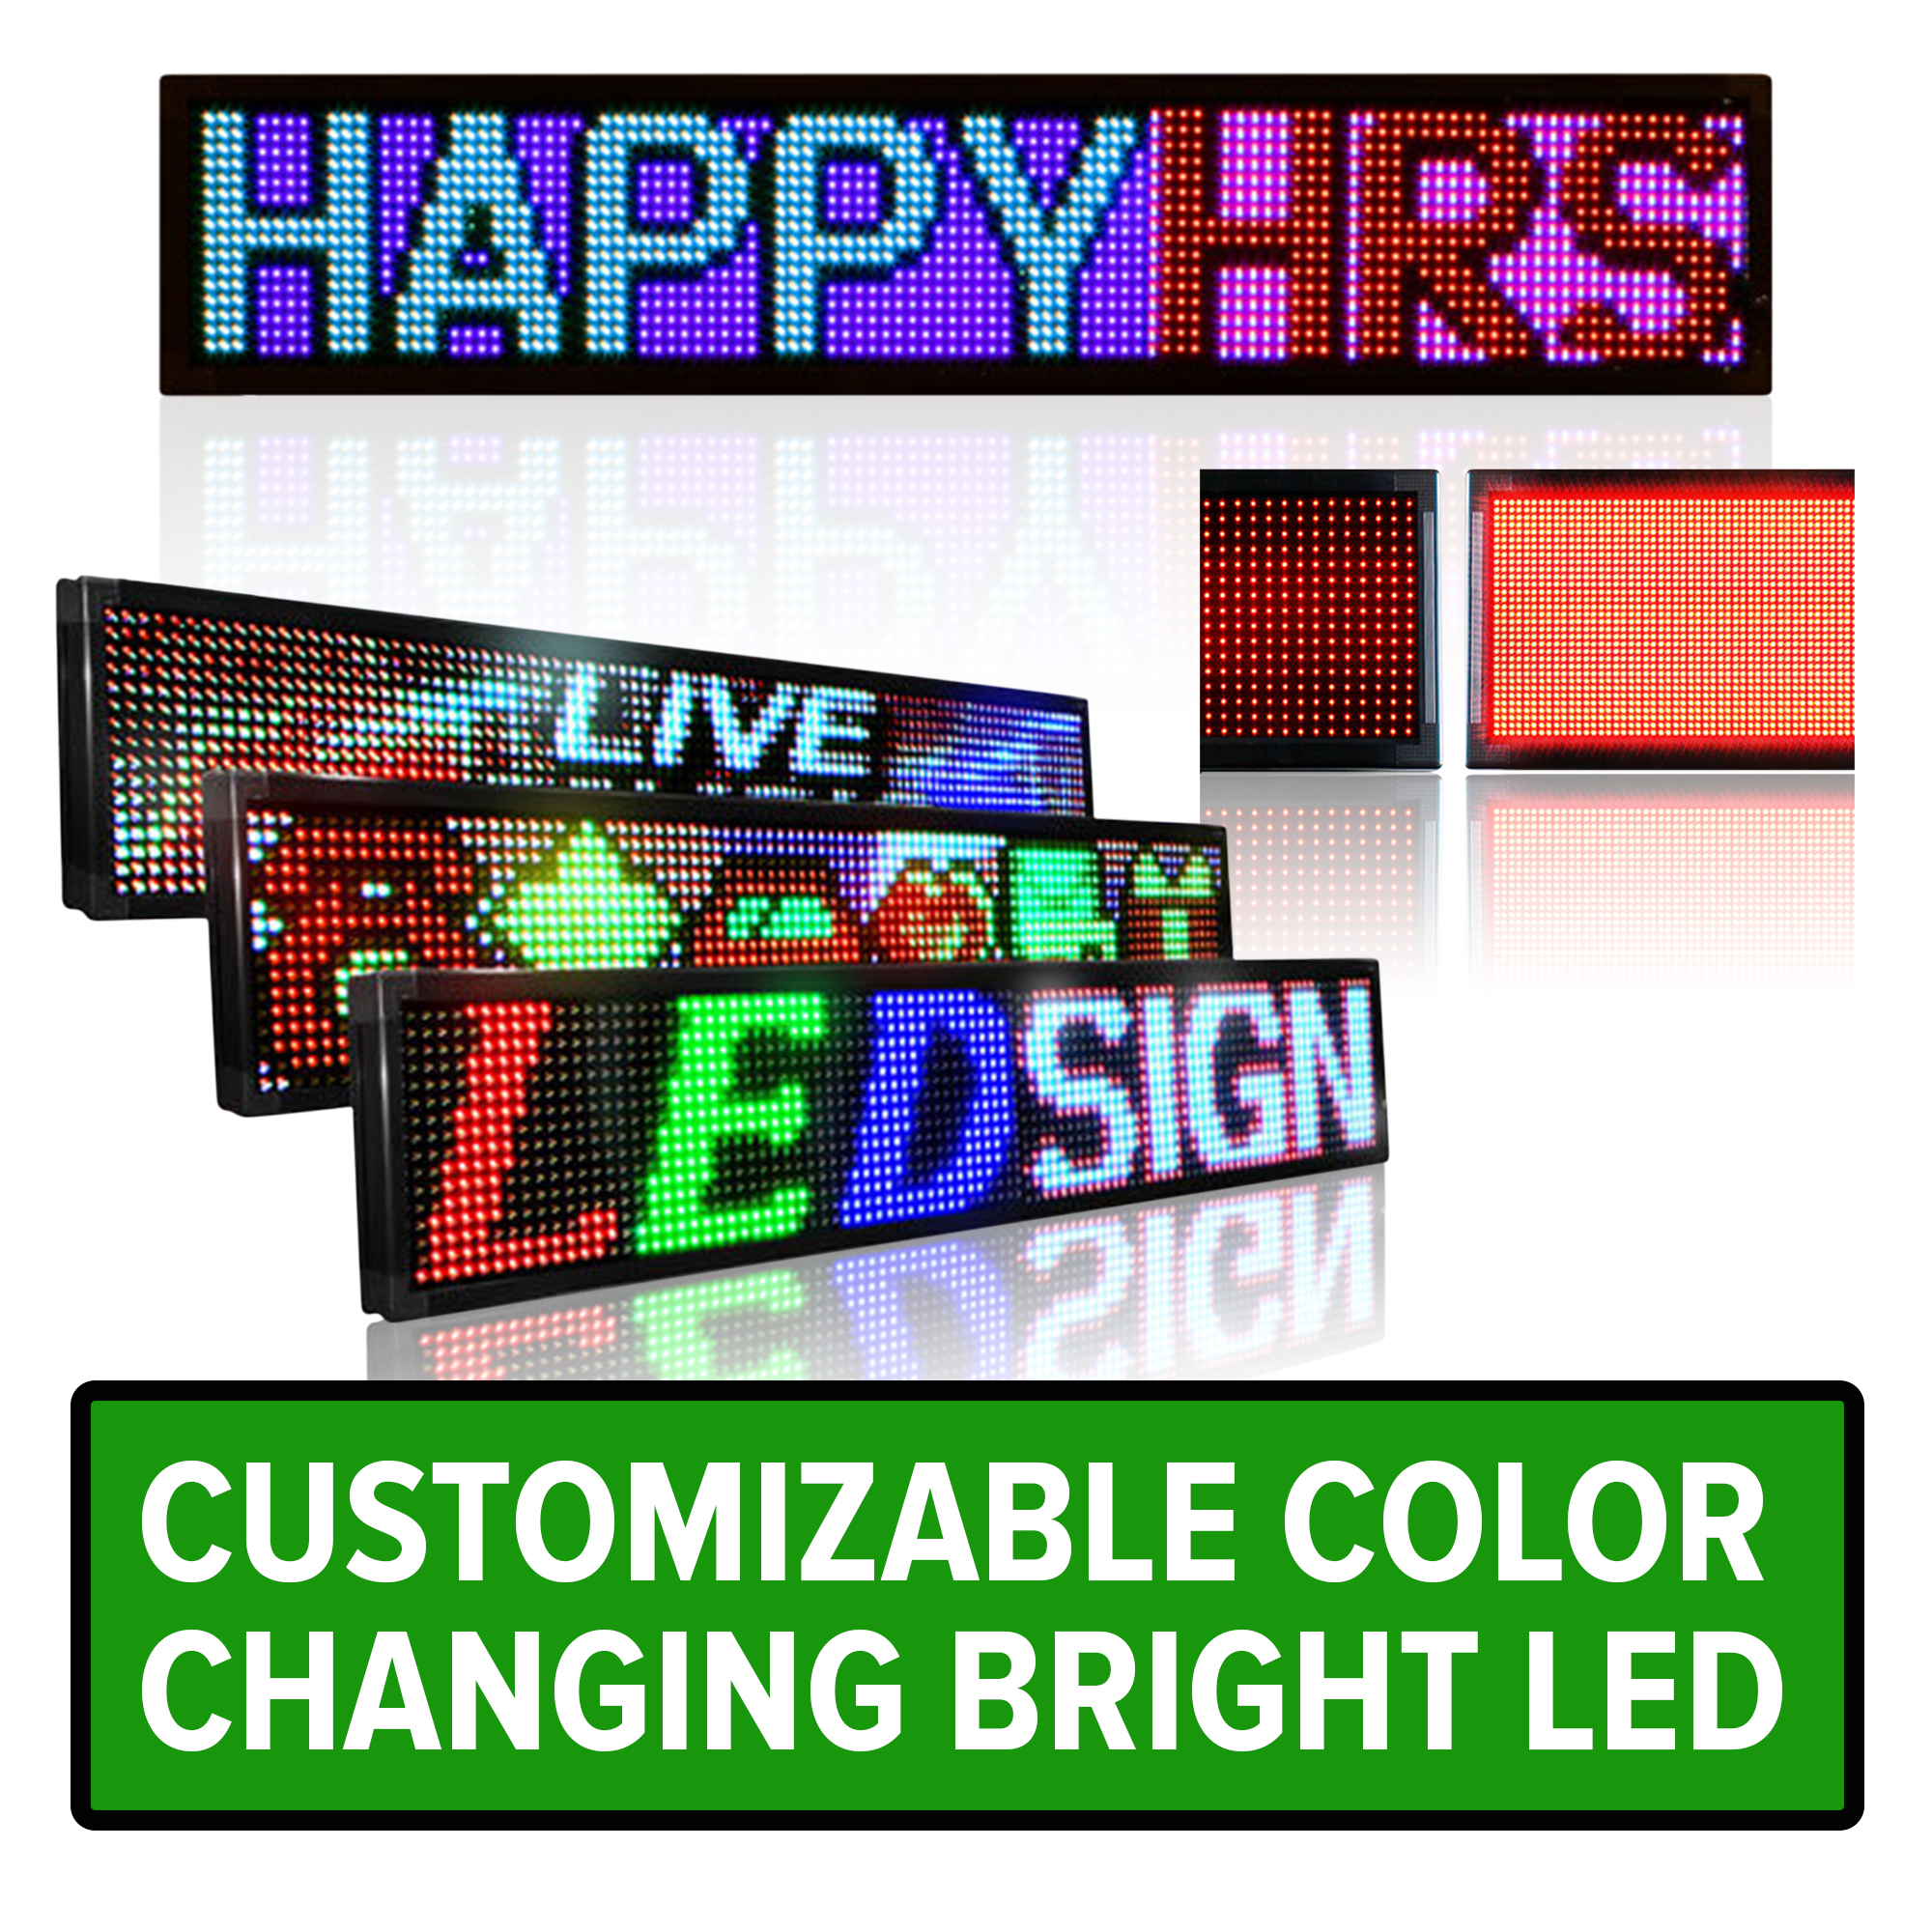 Customizable-color--changing--bright-ler